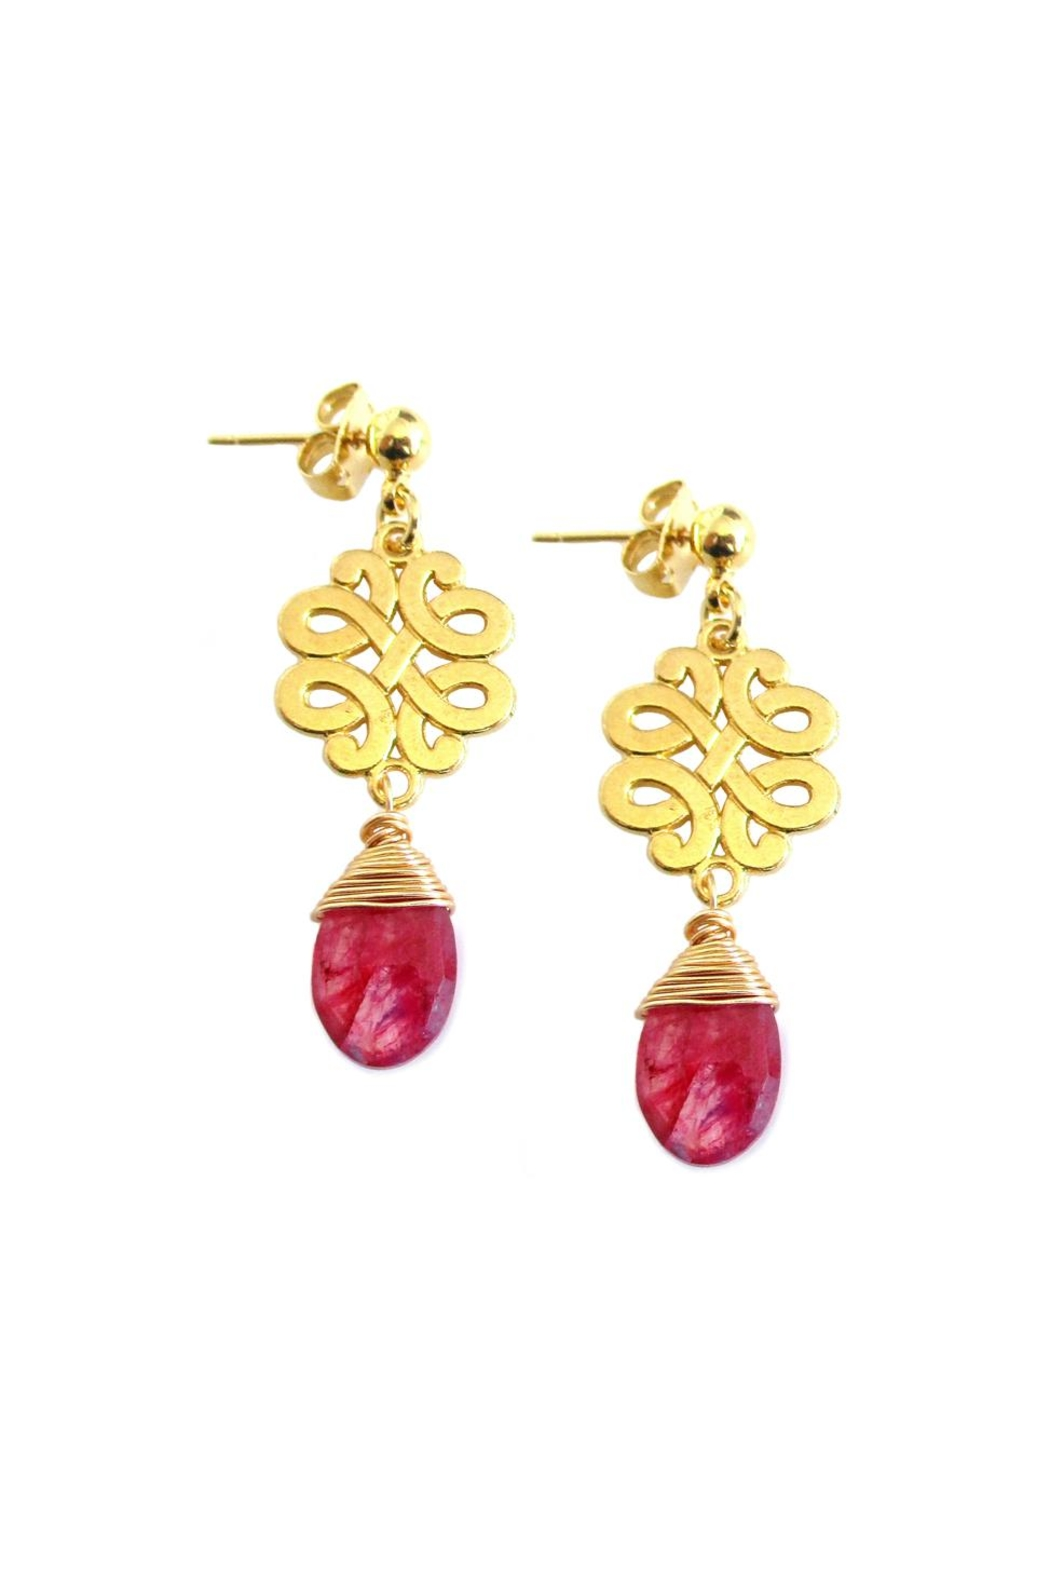 Malia Jewelry Red-Agate Charm Earrings - Main Image